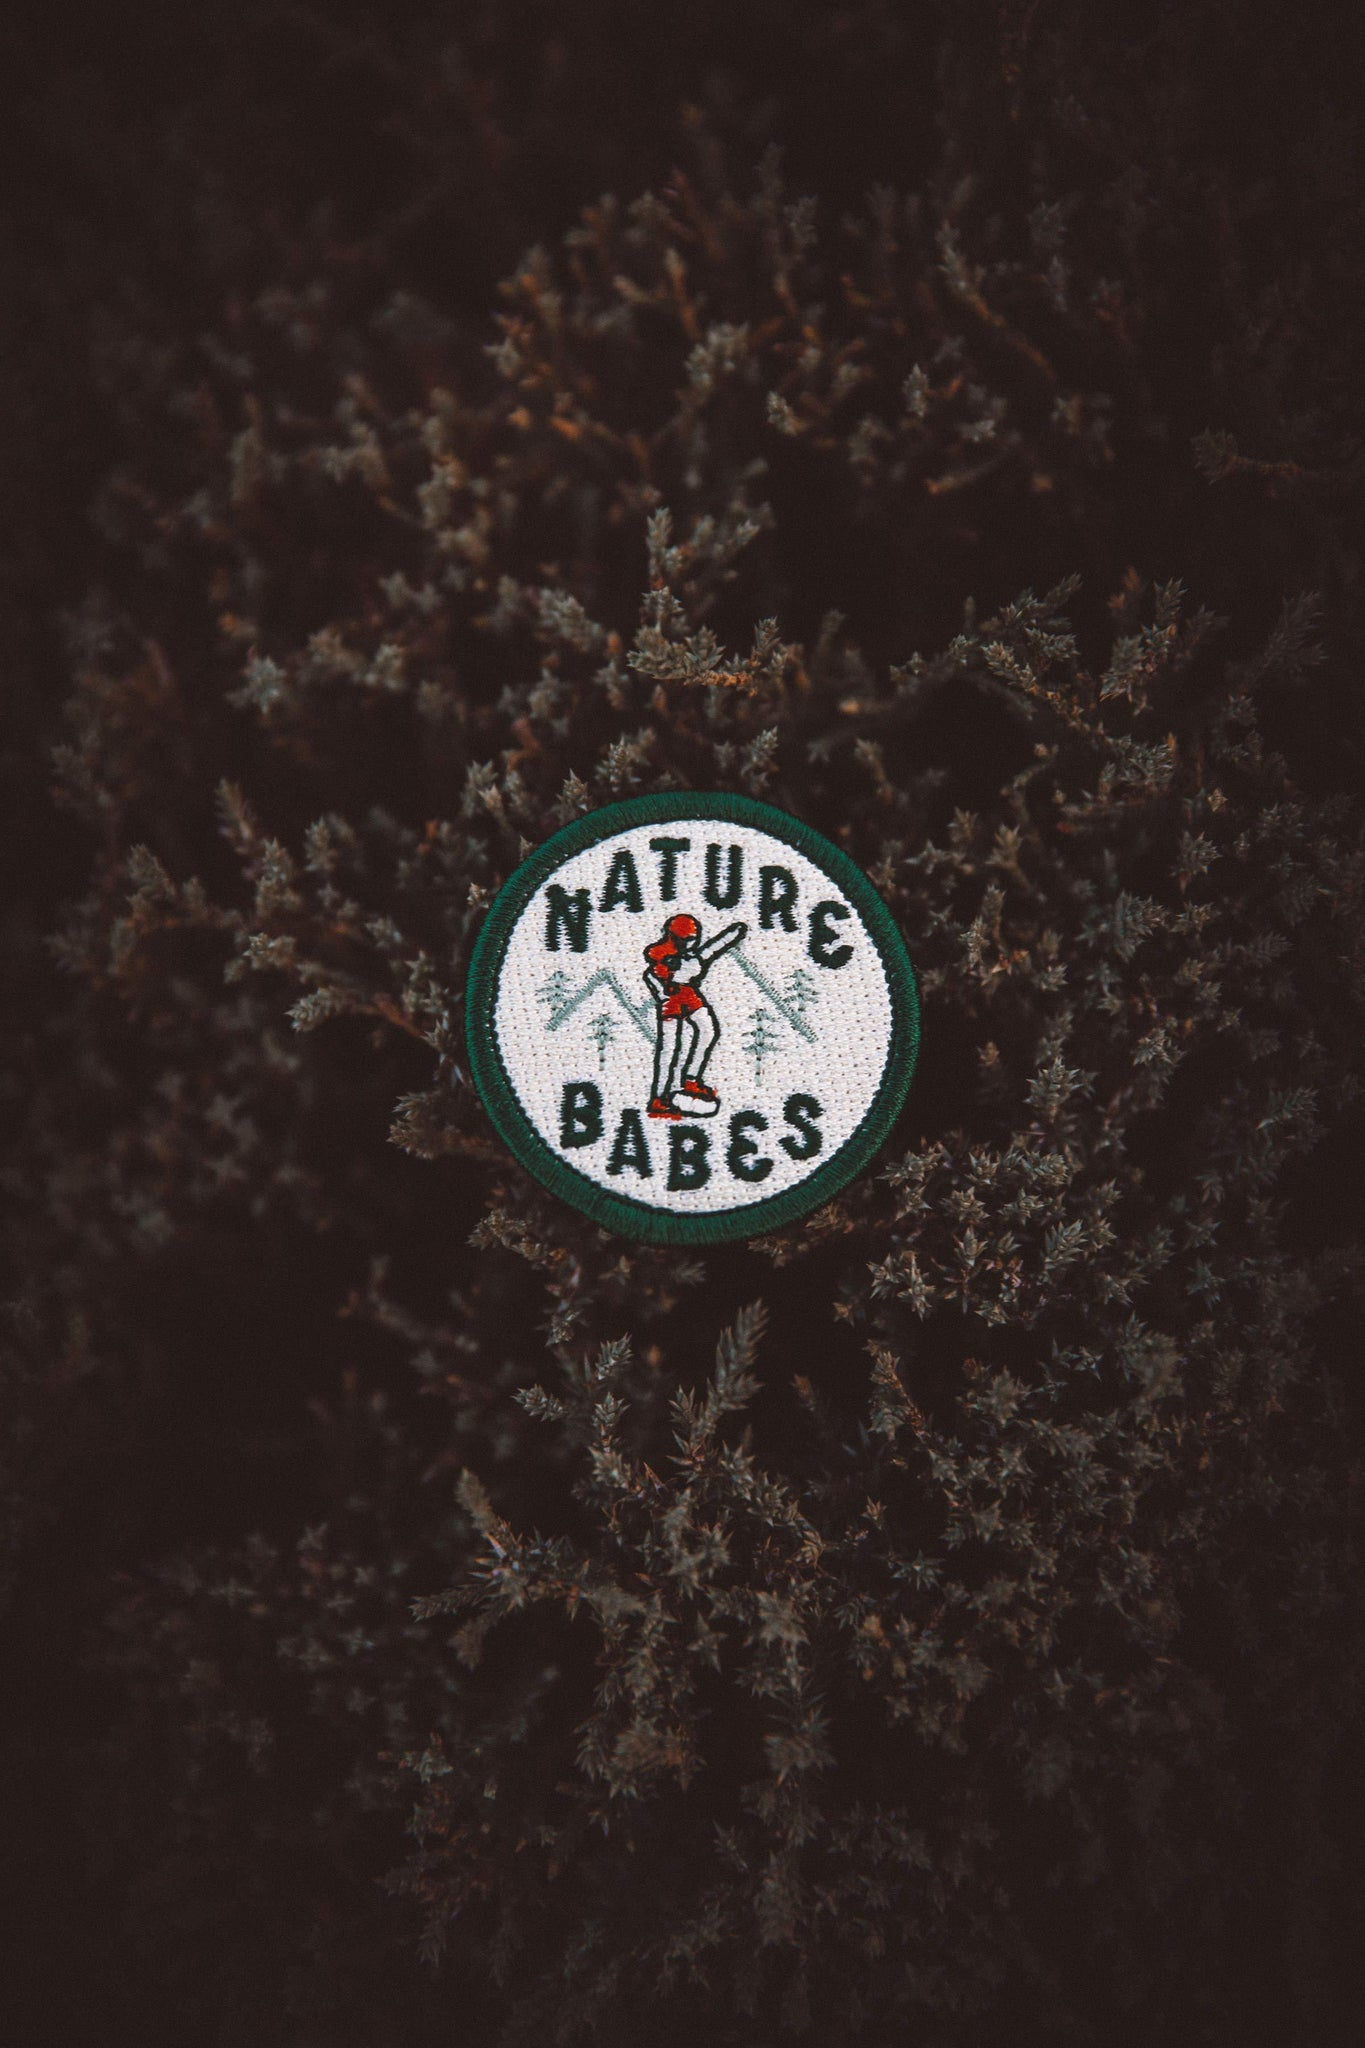 Nature Babes Sticky Patch - The Parks Apparel